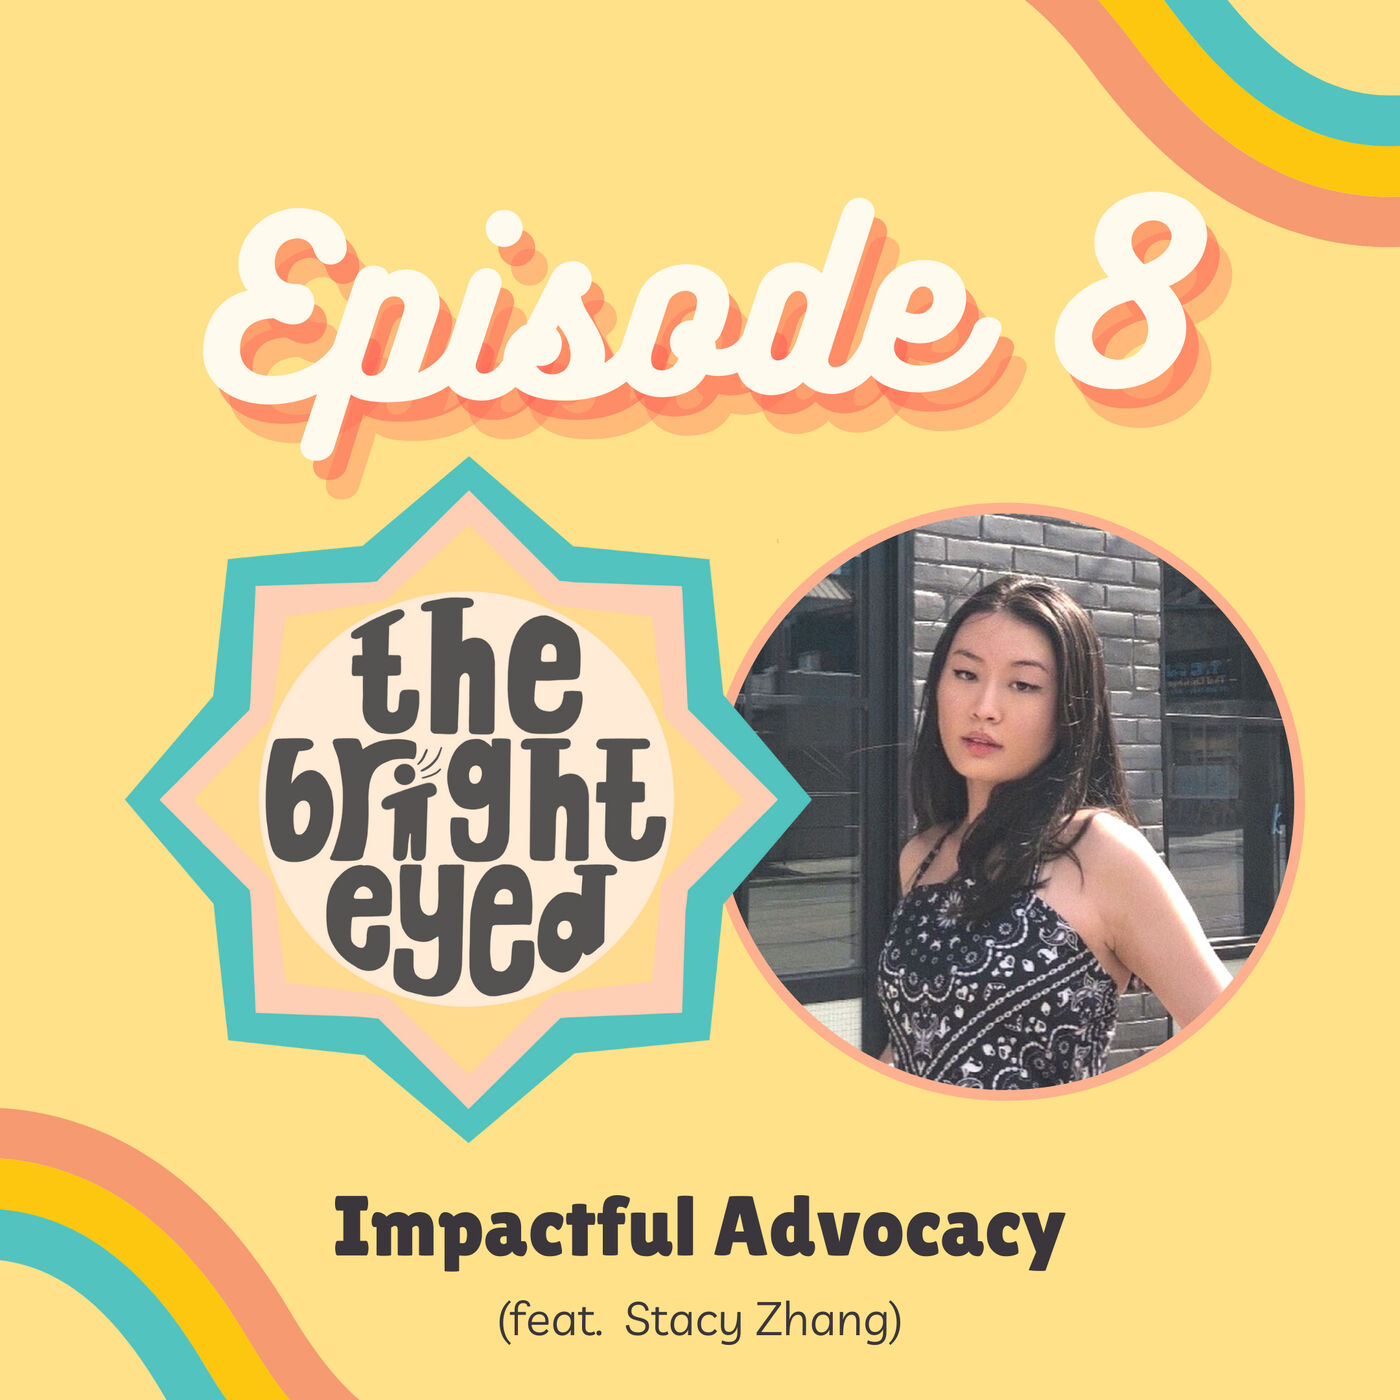 Impactful Advocacy (feat. Stacy Zhang)